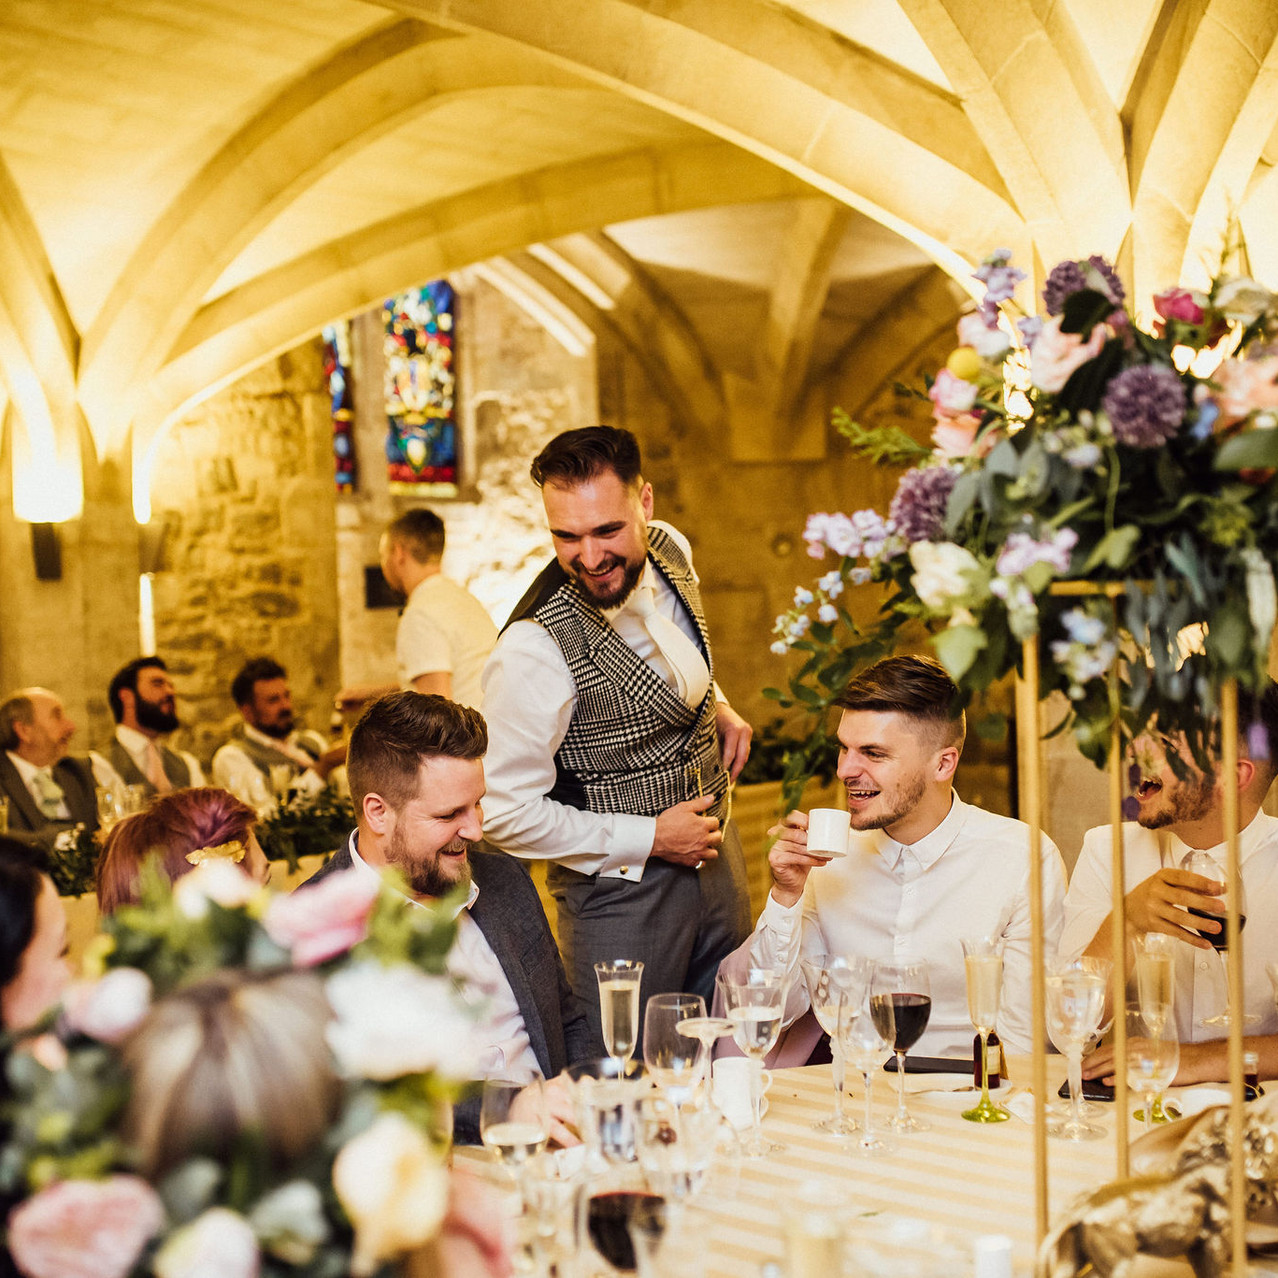 Tall table centrepieces and guests